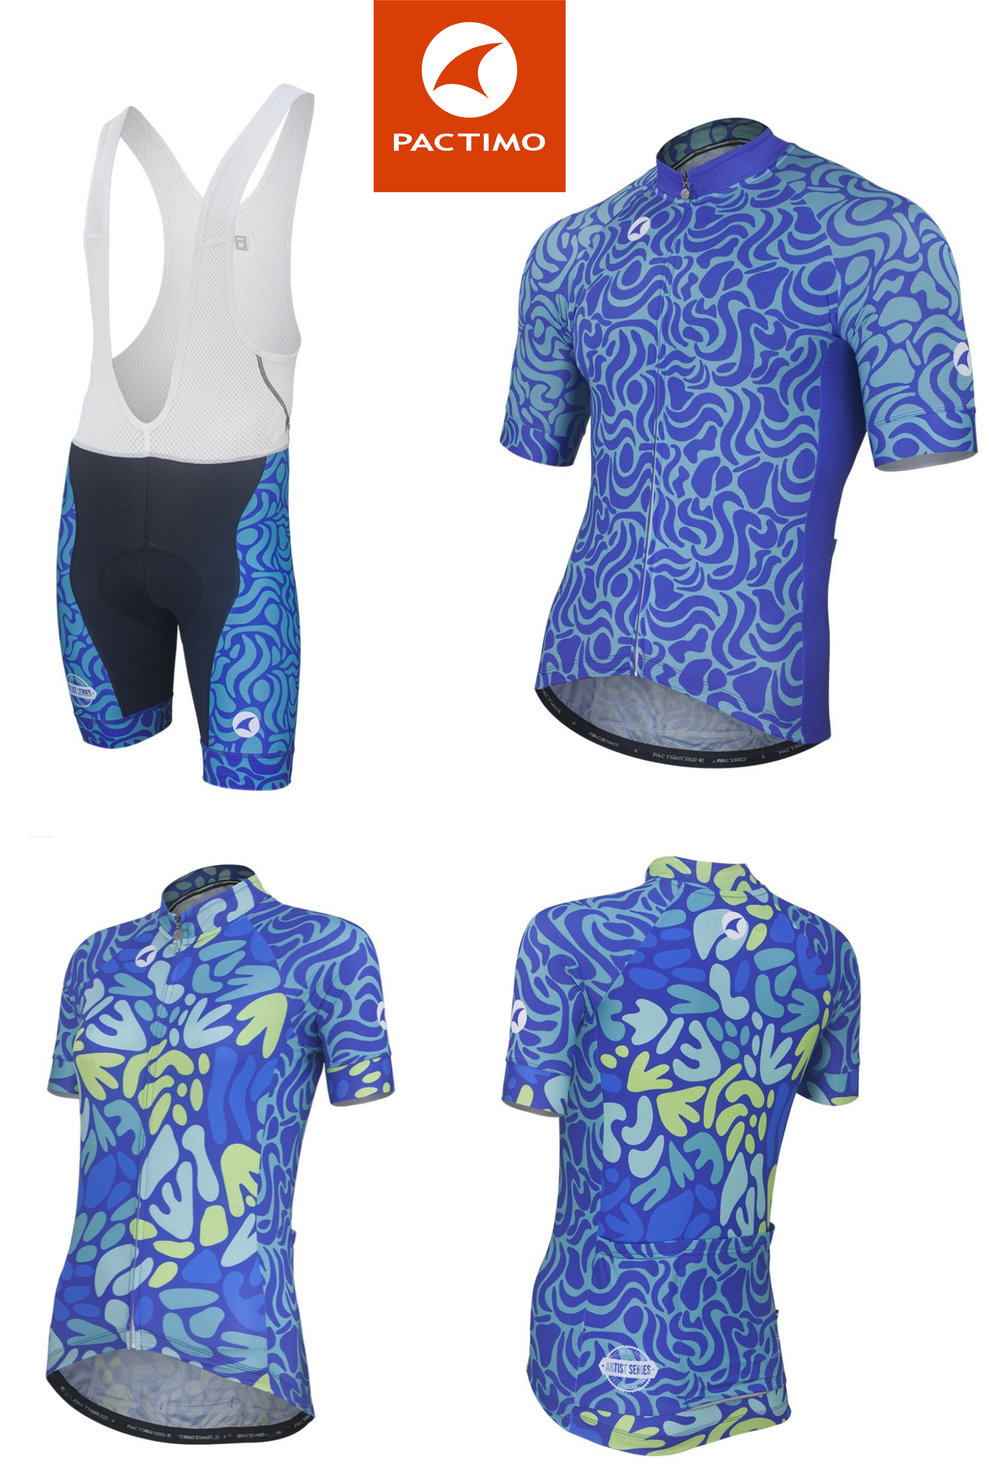 Pactimo Artist Series - Cycling Jersey Design     Link to visit the site